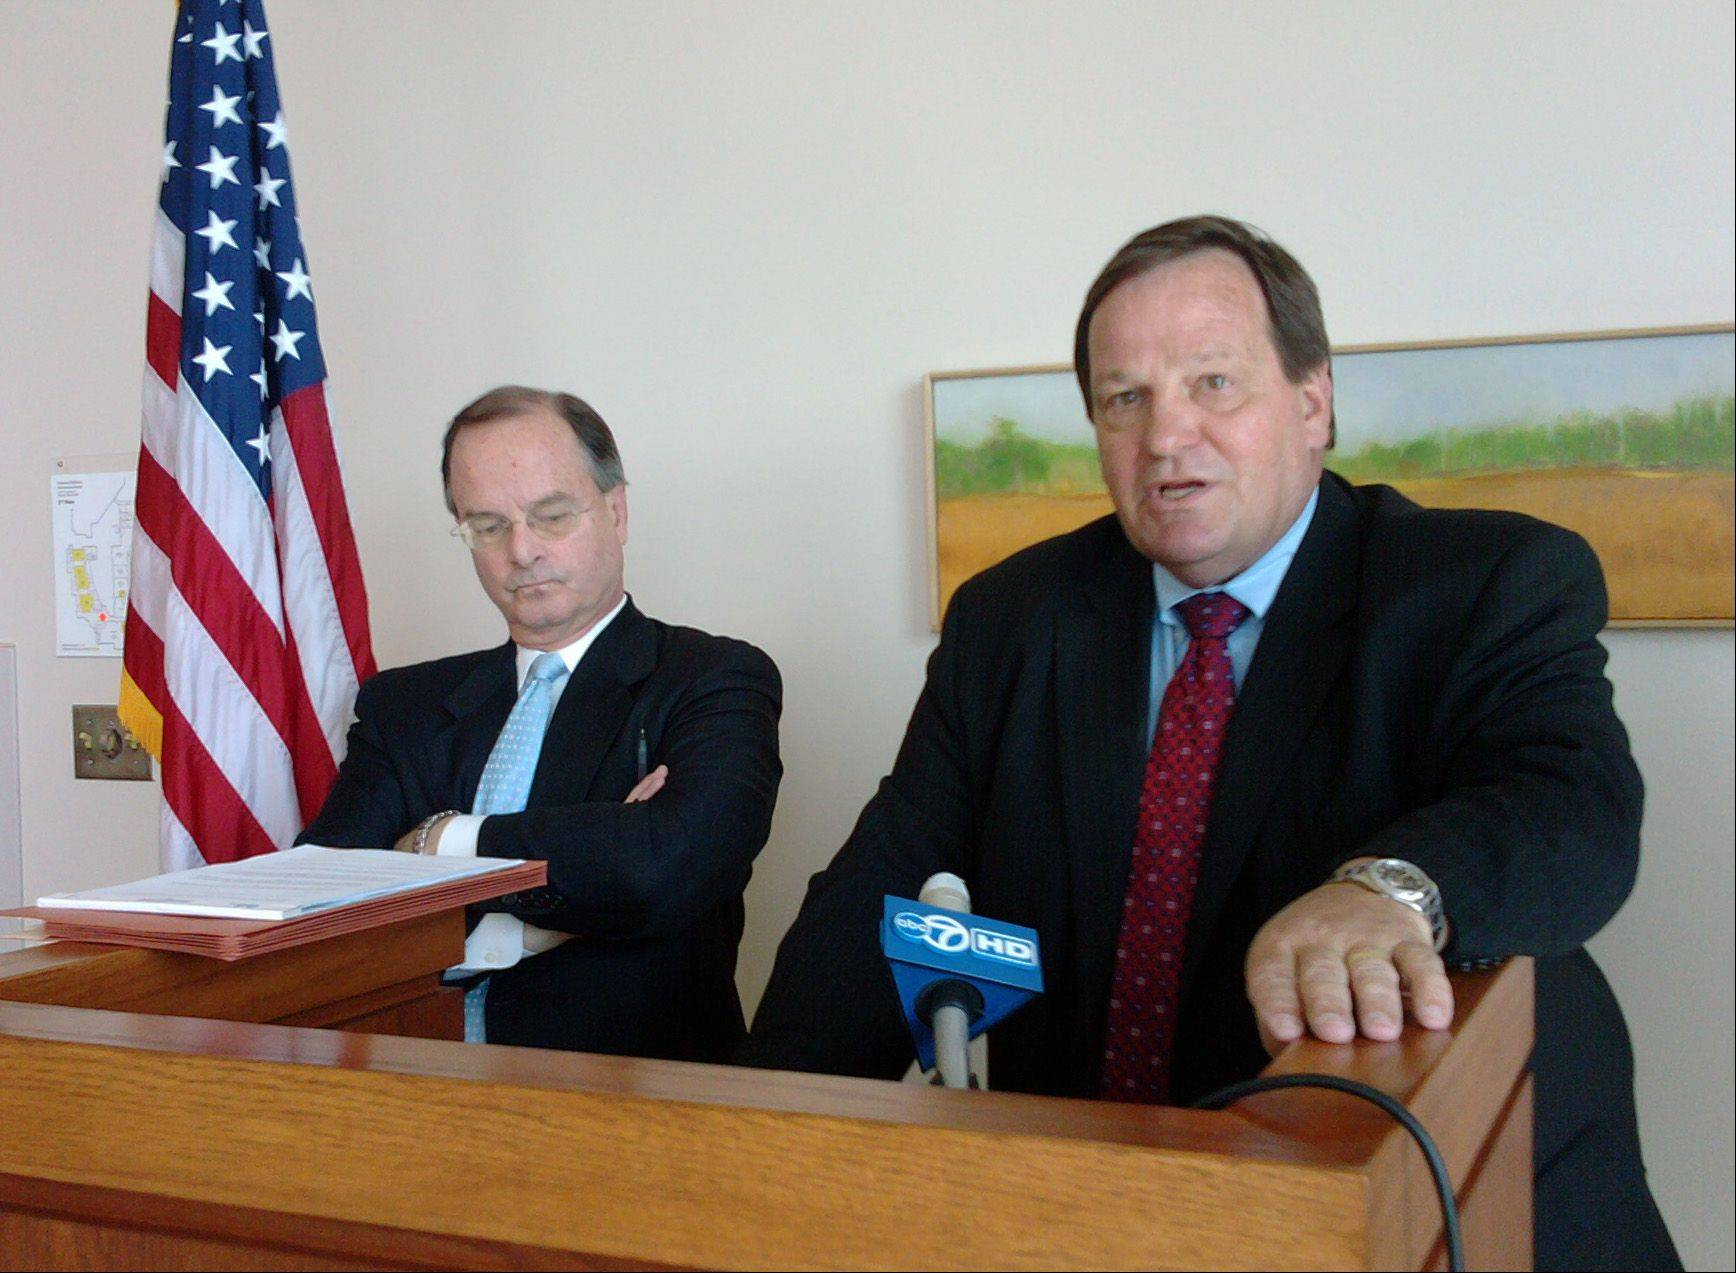 Retired Lake County Circuit Judge Henry Tonigan III, right, addressed media while working as a special prosecutor in a recent case against McHenry County State's Attorney Louis Bianchi.